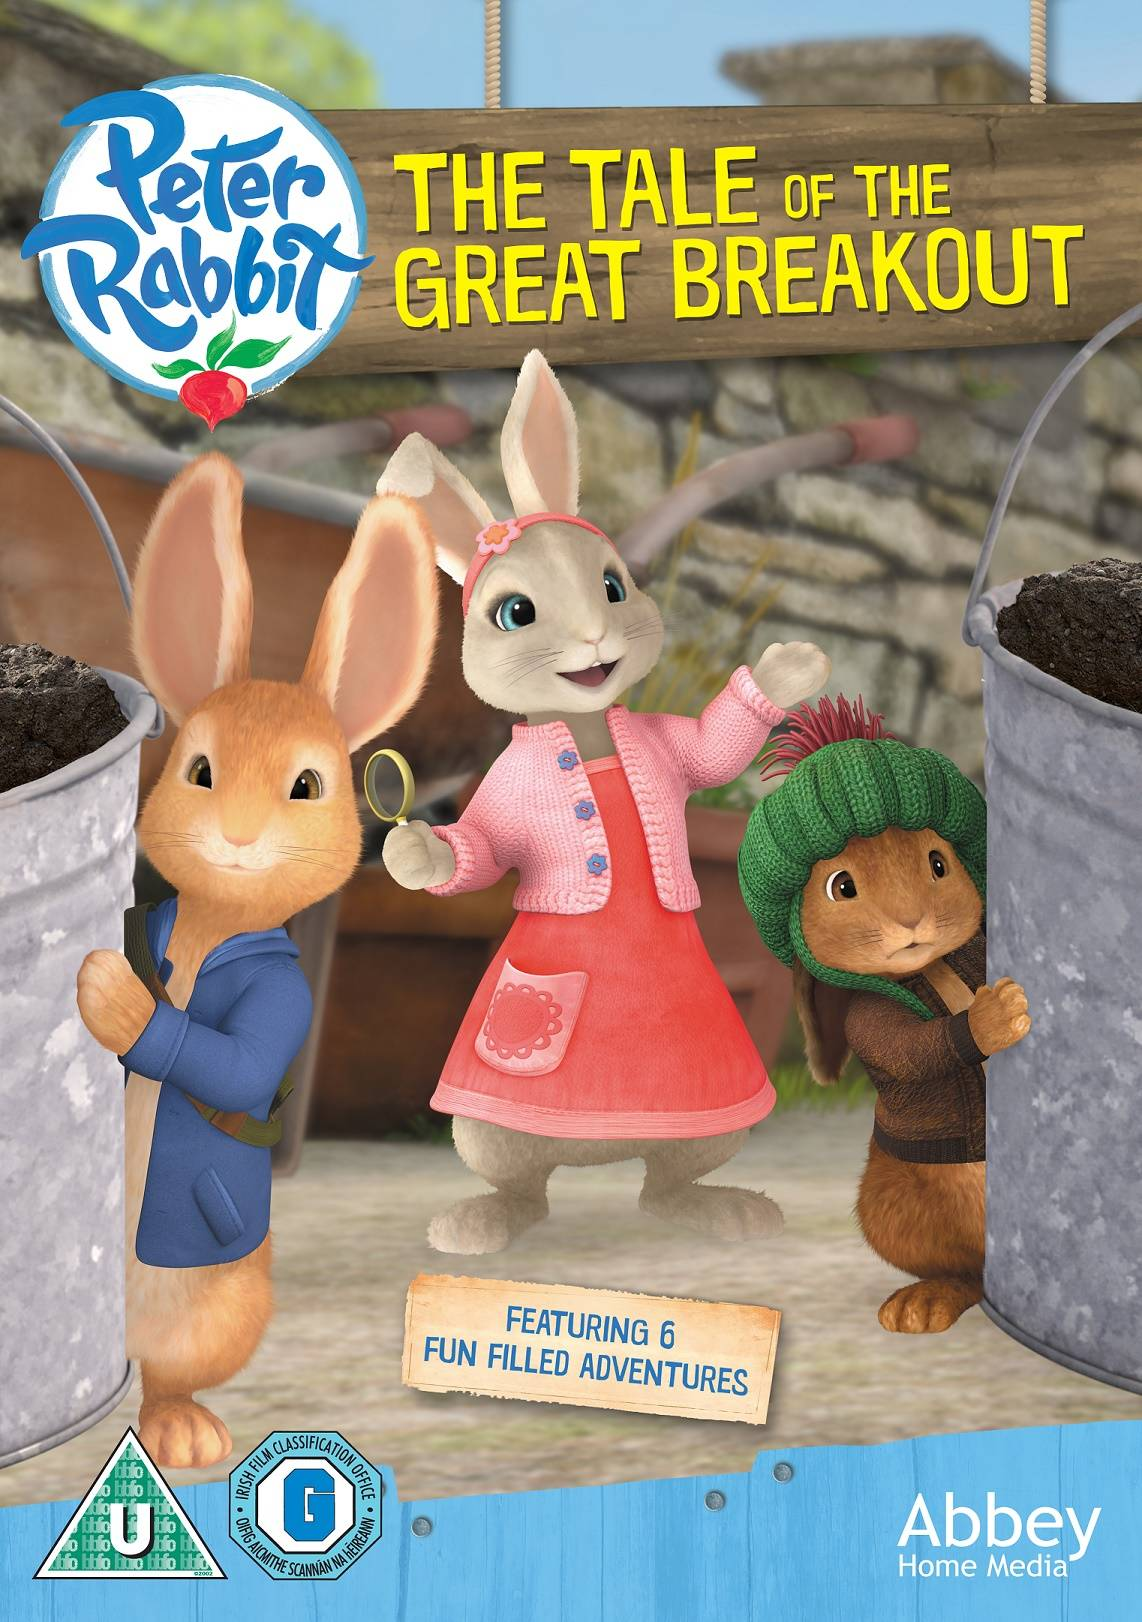 Peter Rabbit The Tale of the Great Breakout DVD Giveaway - www.lovefrommim.com